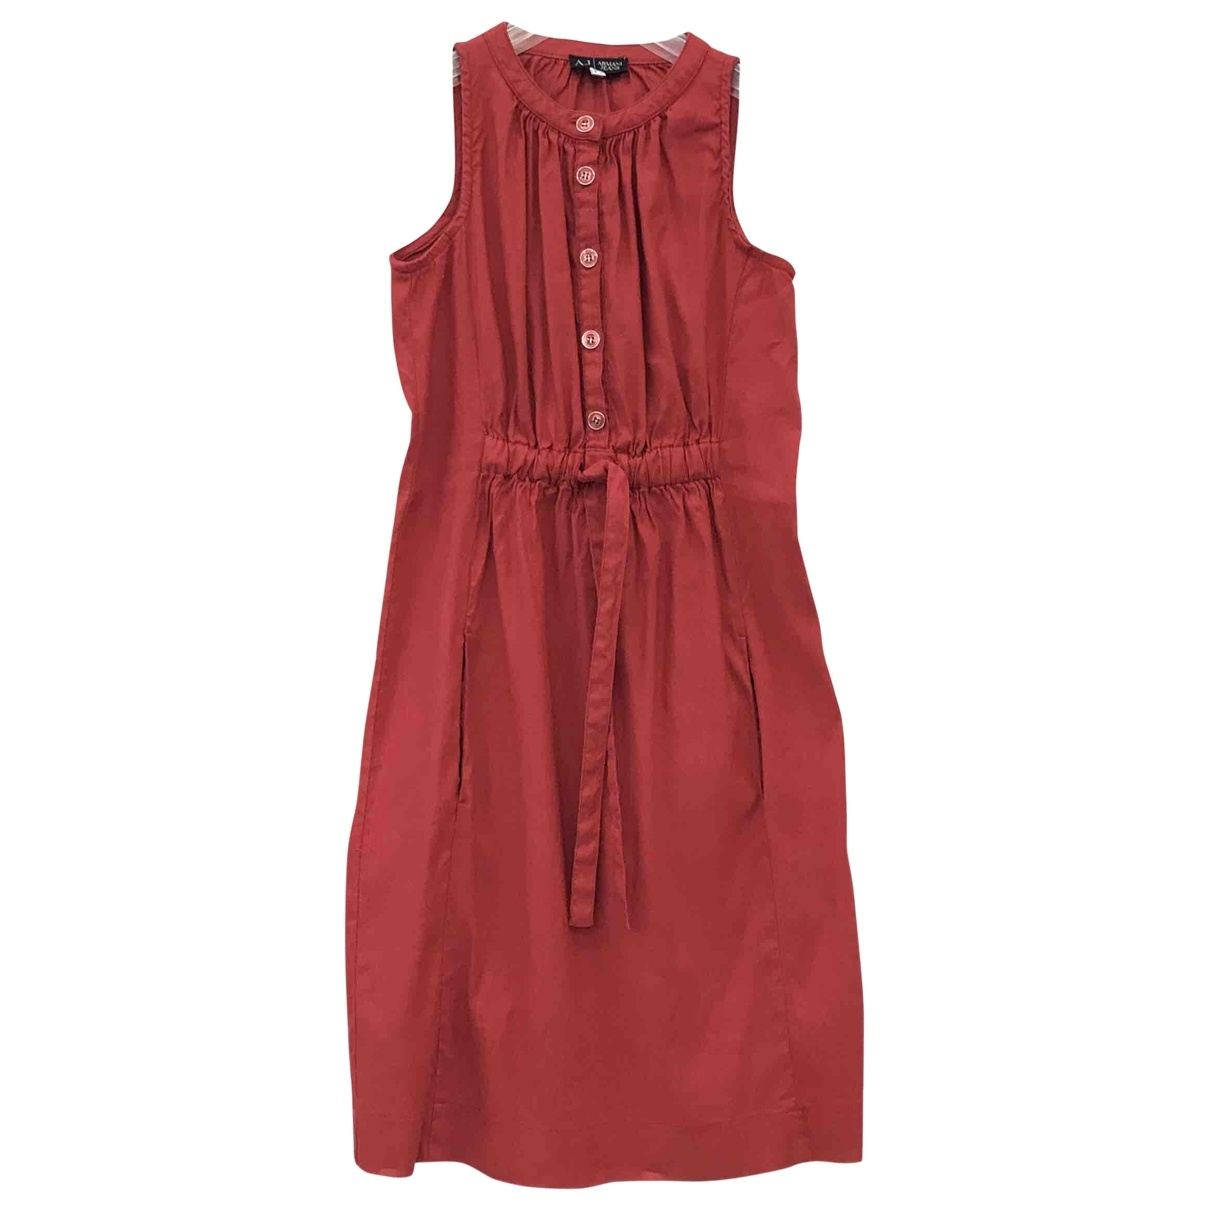 Armani Jeans \N Red Linen dress for Women 42 IT